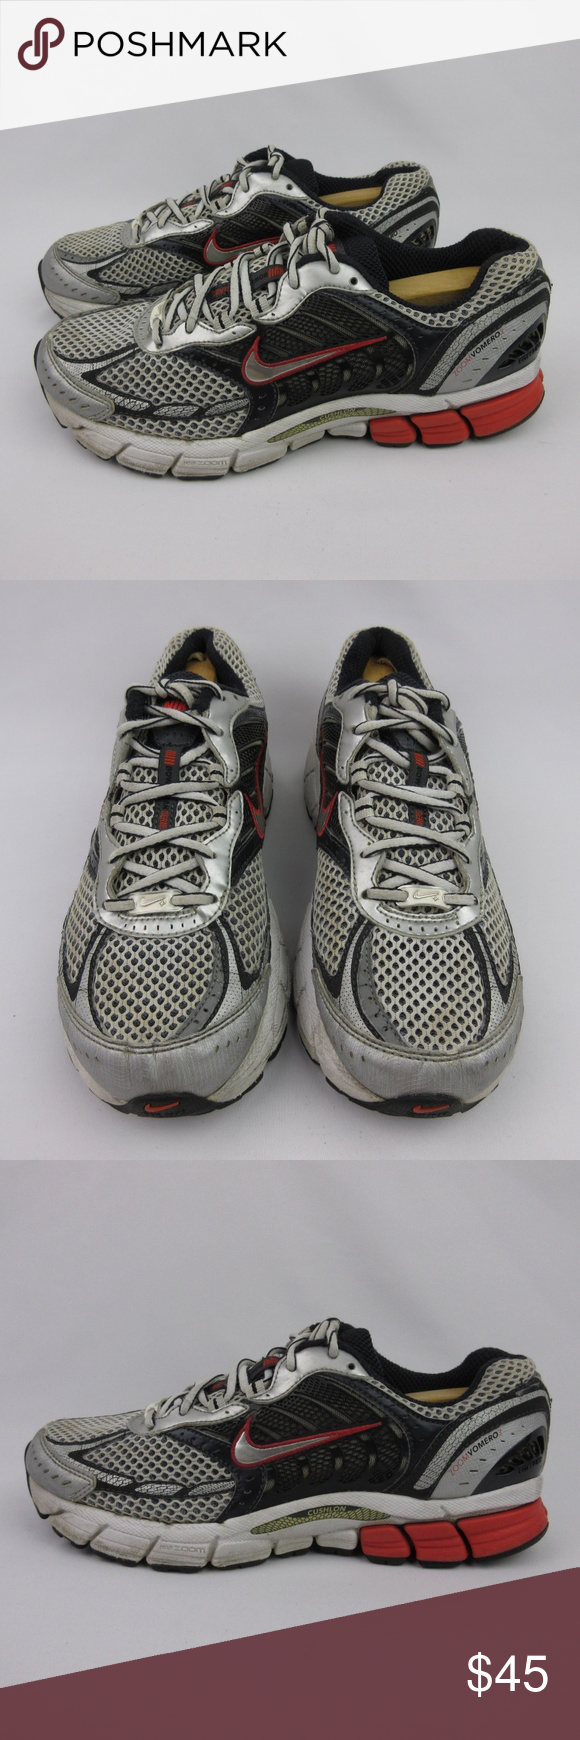 Nike Air Zoom Vomero 3 Mens Size 9